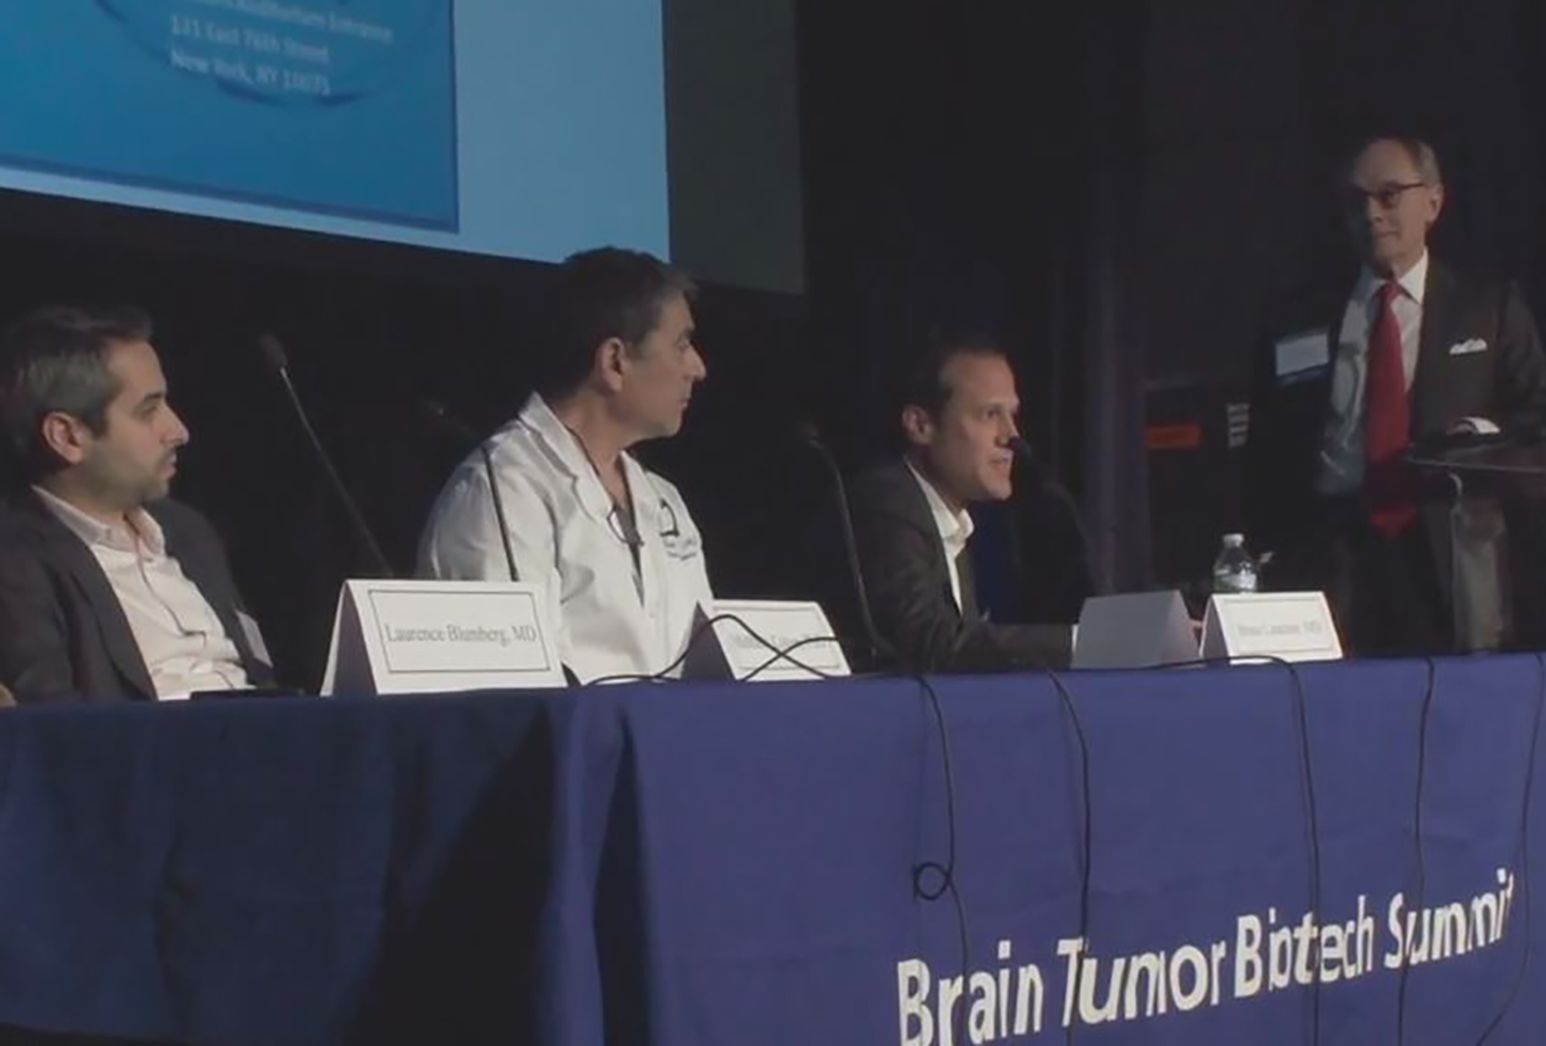 Doctors sitting at a table on stage during a medical conference